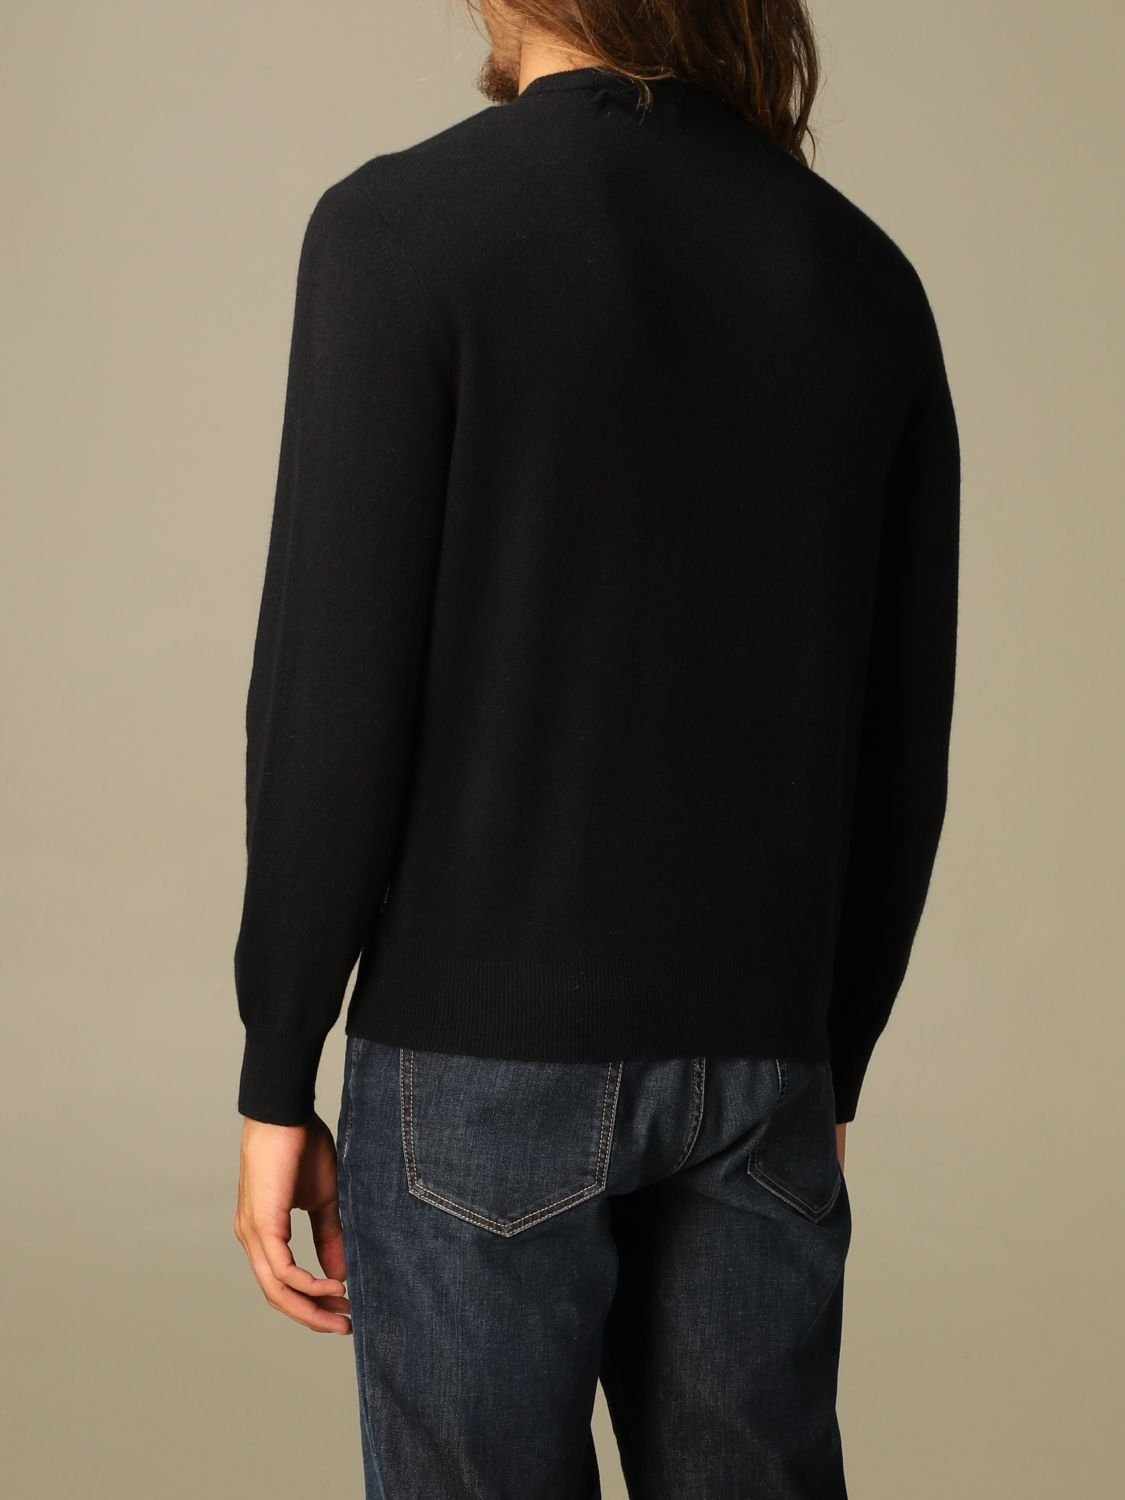 Sweater Z Zegna: Z Zegna cashmere sweater with long sleeves black 2